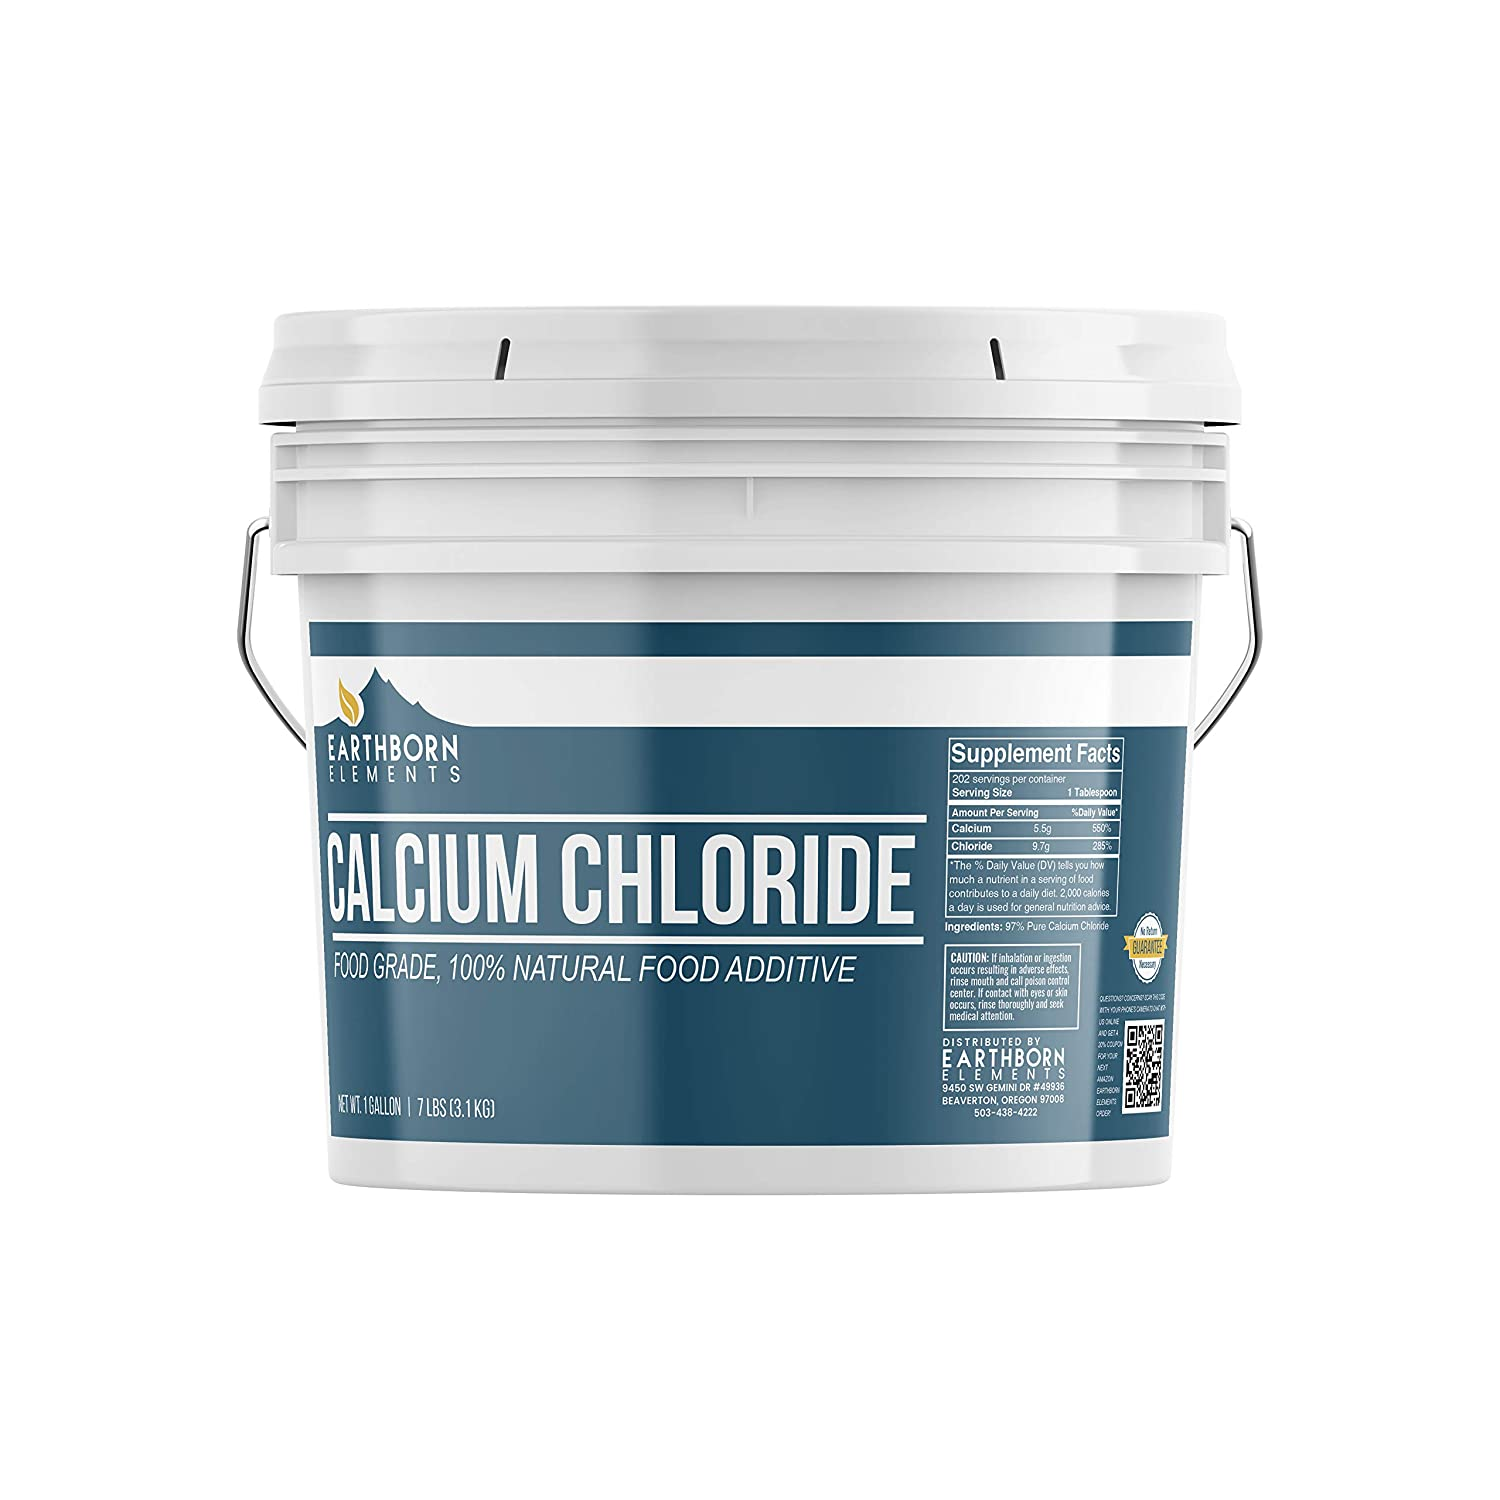 Calcium Chloride (1 Gallon Bucket, 7 lb) by Earthborn Elements, Food Grade, Brewing/Winemaking, Pickling, Cheesemaking, Sports Drinks, Food Additive/Preservative, Resealable Bucket 81zi5tD2BqML